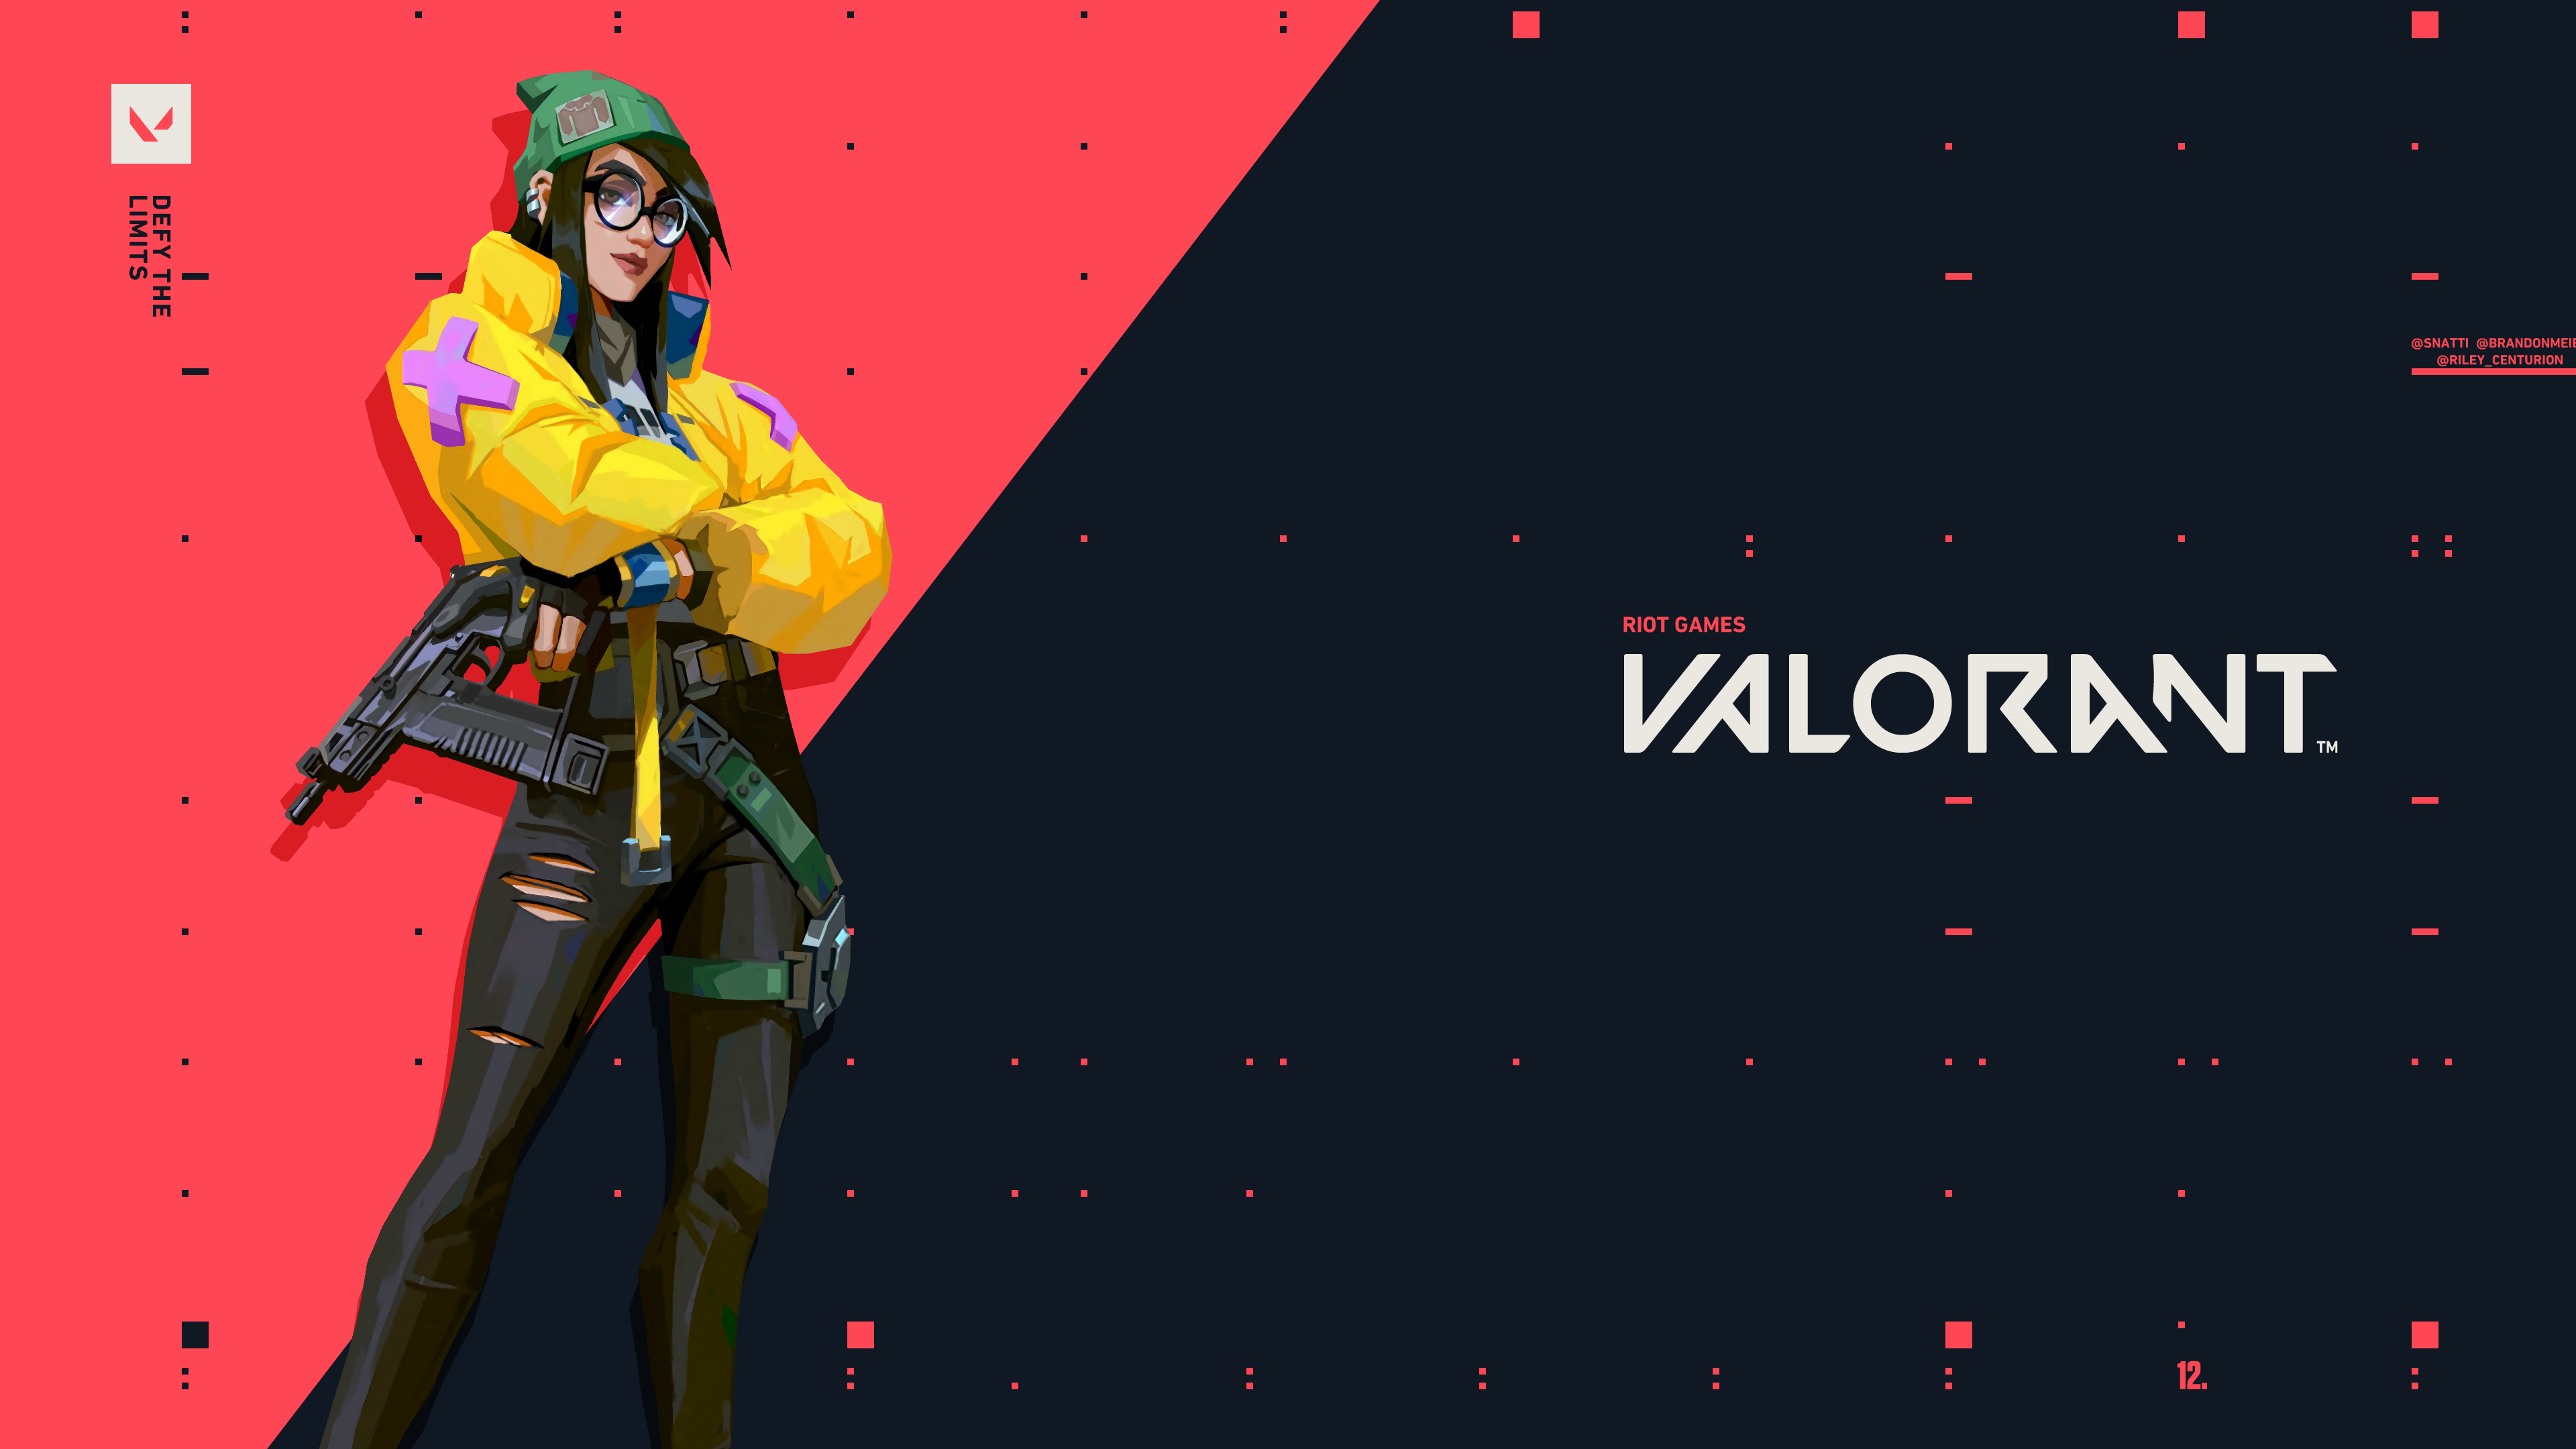 """Valorant Patch 1.11 brings """"temporary charges"""" for some abilities"""